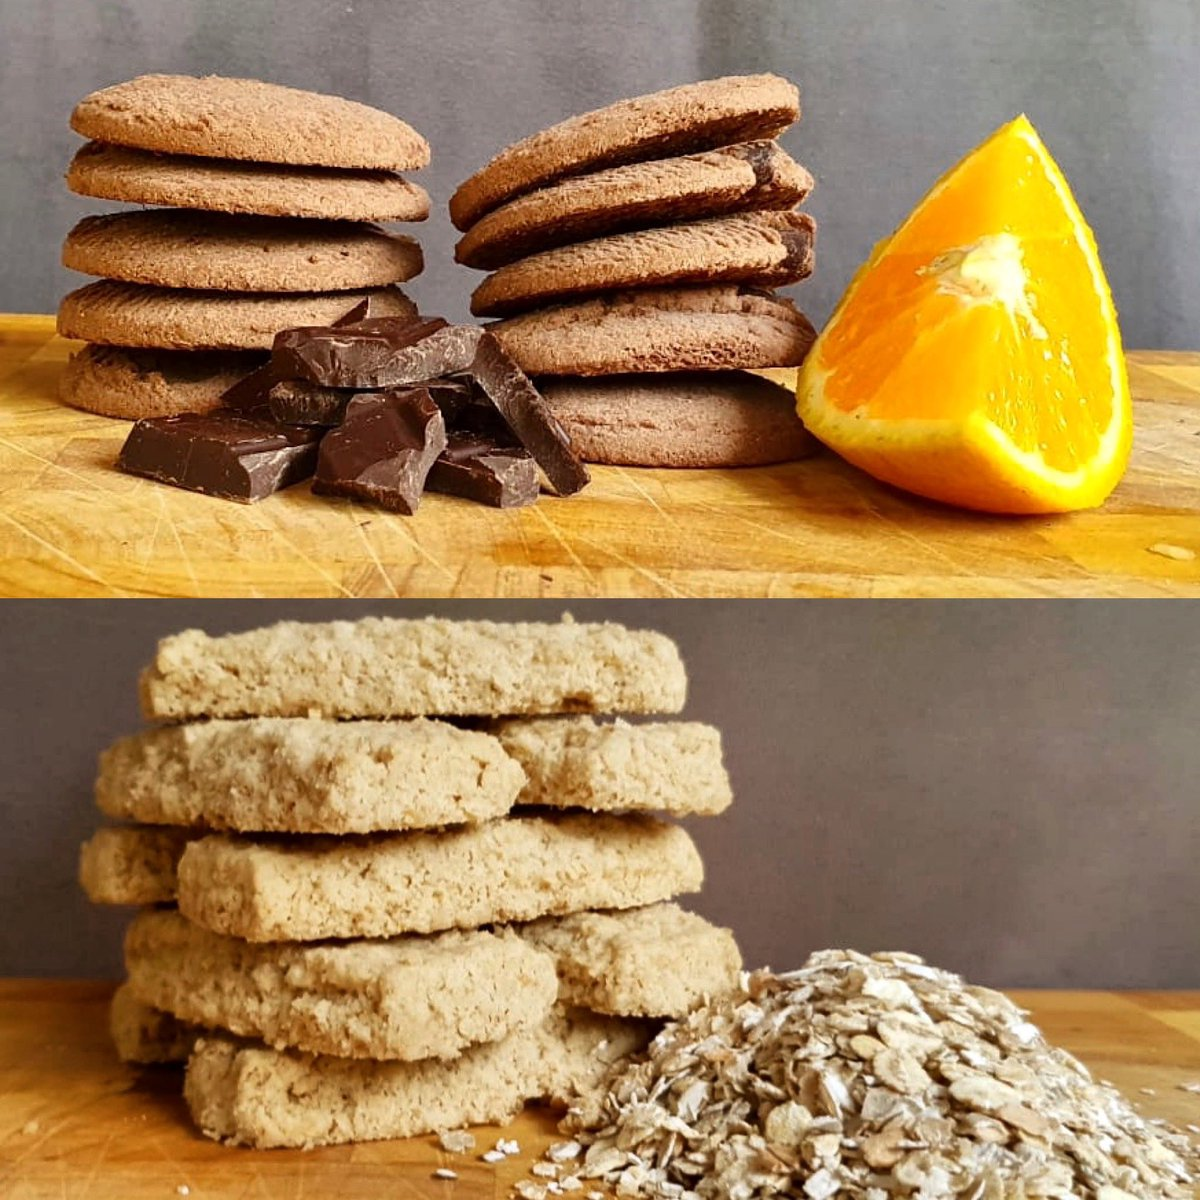 House Of Biscuits On Twitter It S A Film Biscuit And Brews Kind Of Day But Which Do You Choose Oat Flips Or Chocolate Chunk And Orange Baker Biscuits Https T Co Jnf41vdnun